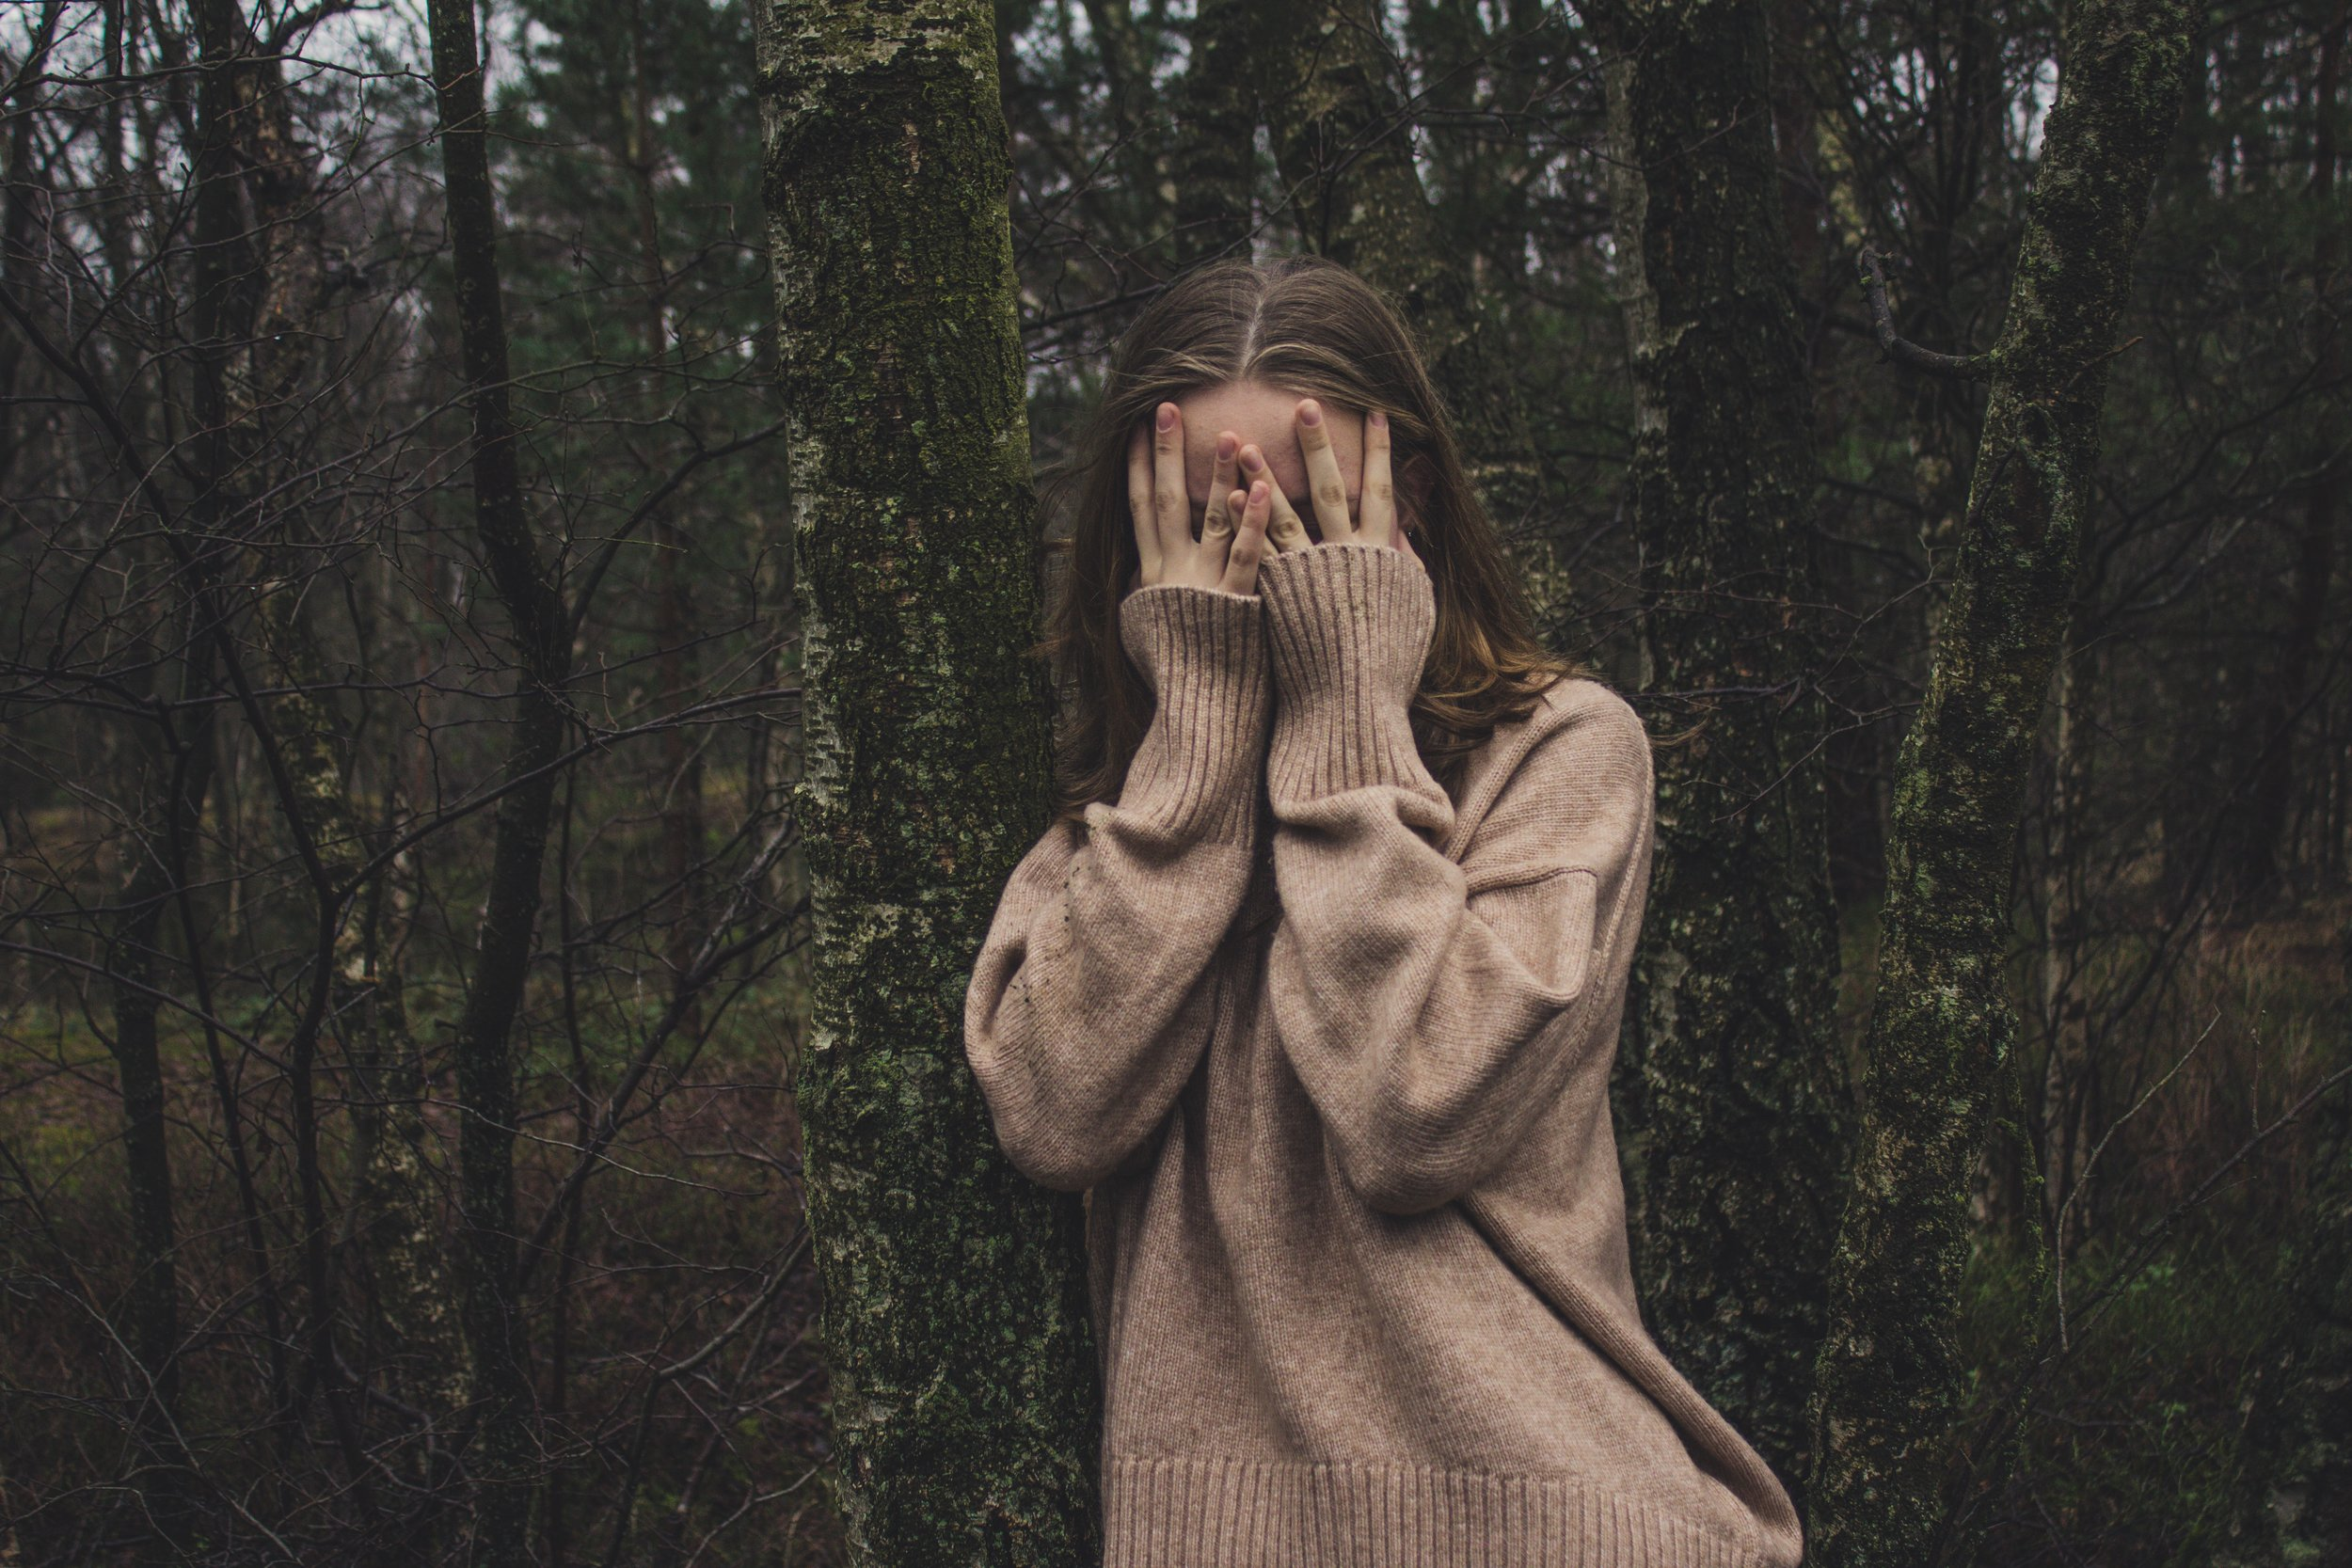 A young white woman in an oversized brown sweater stands in a forest, her hands covering her face.